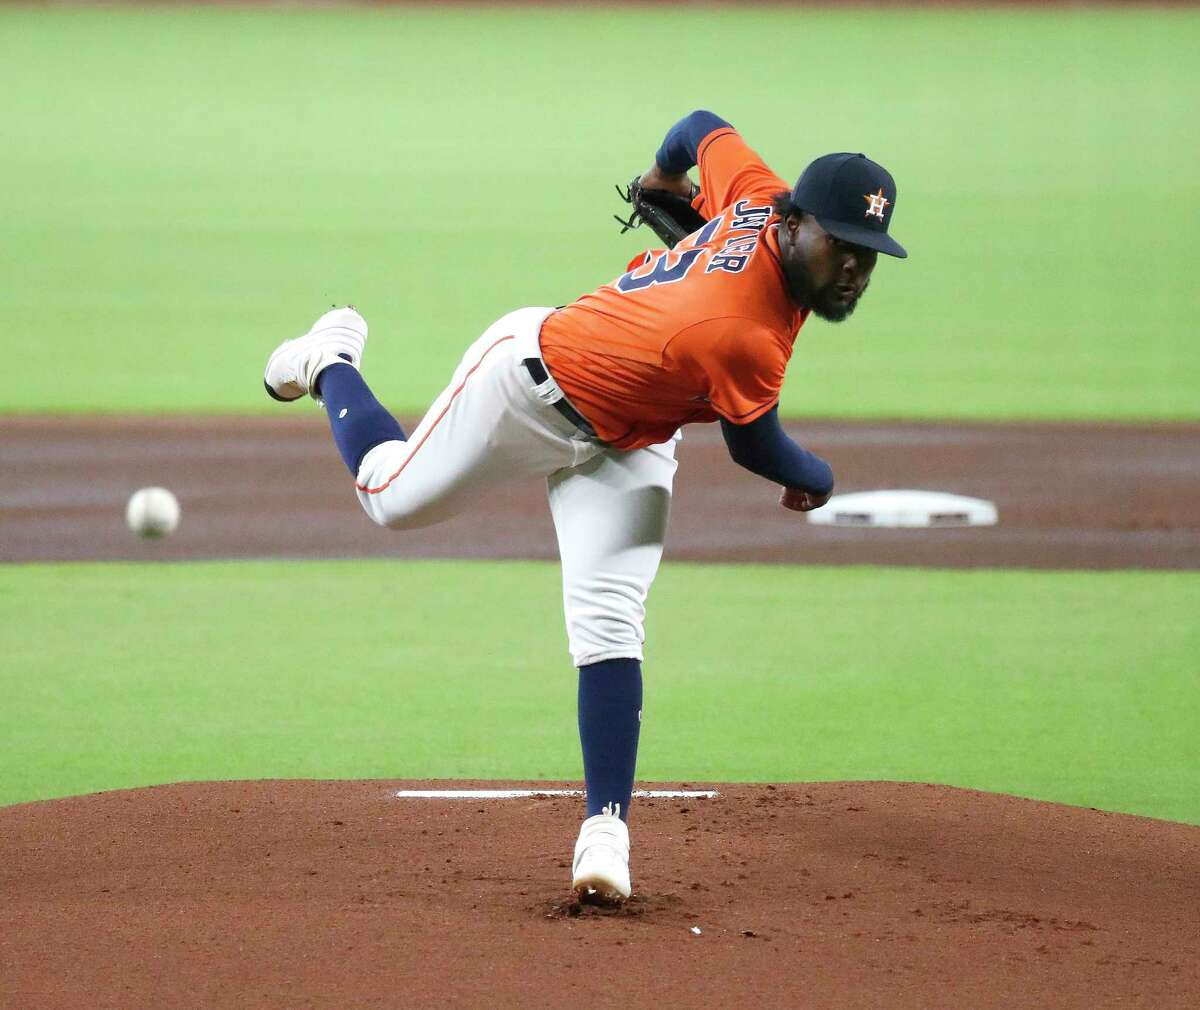 Houston Astros starting pitcher Cristian Javier (53) pitches during the first inning of an MLB baseball game at Minute Maid Park, Tuesday, August 25, 2020, in Houston.